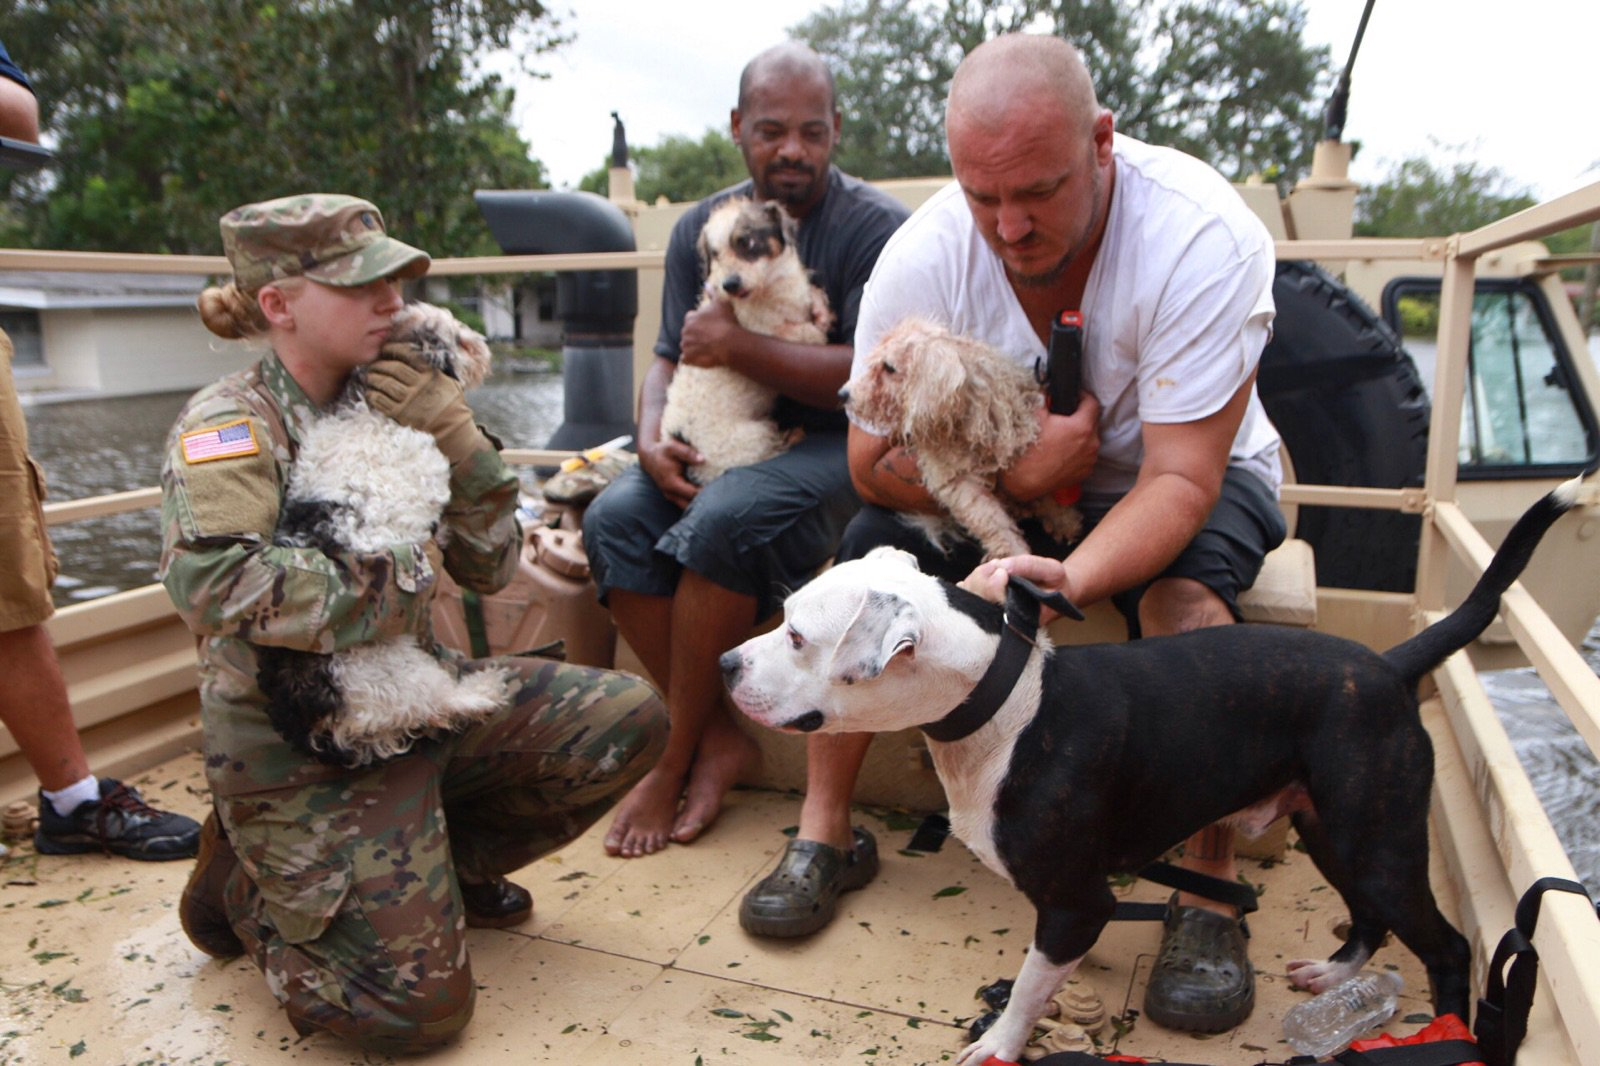 <div class='meta'><div class='origin-logo' data-origin='none'></div><span class='caption-text' data-credit='OCFireRescue/Twitter'>The National Guard, along with Orange County Fire and Rescue, were out rescuing pets in the storm.</span></div>